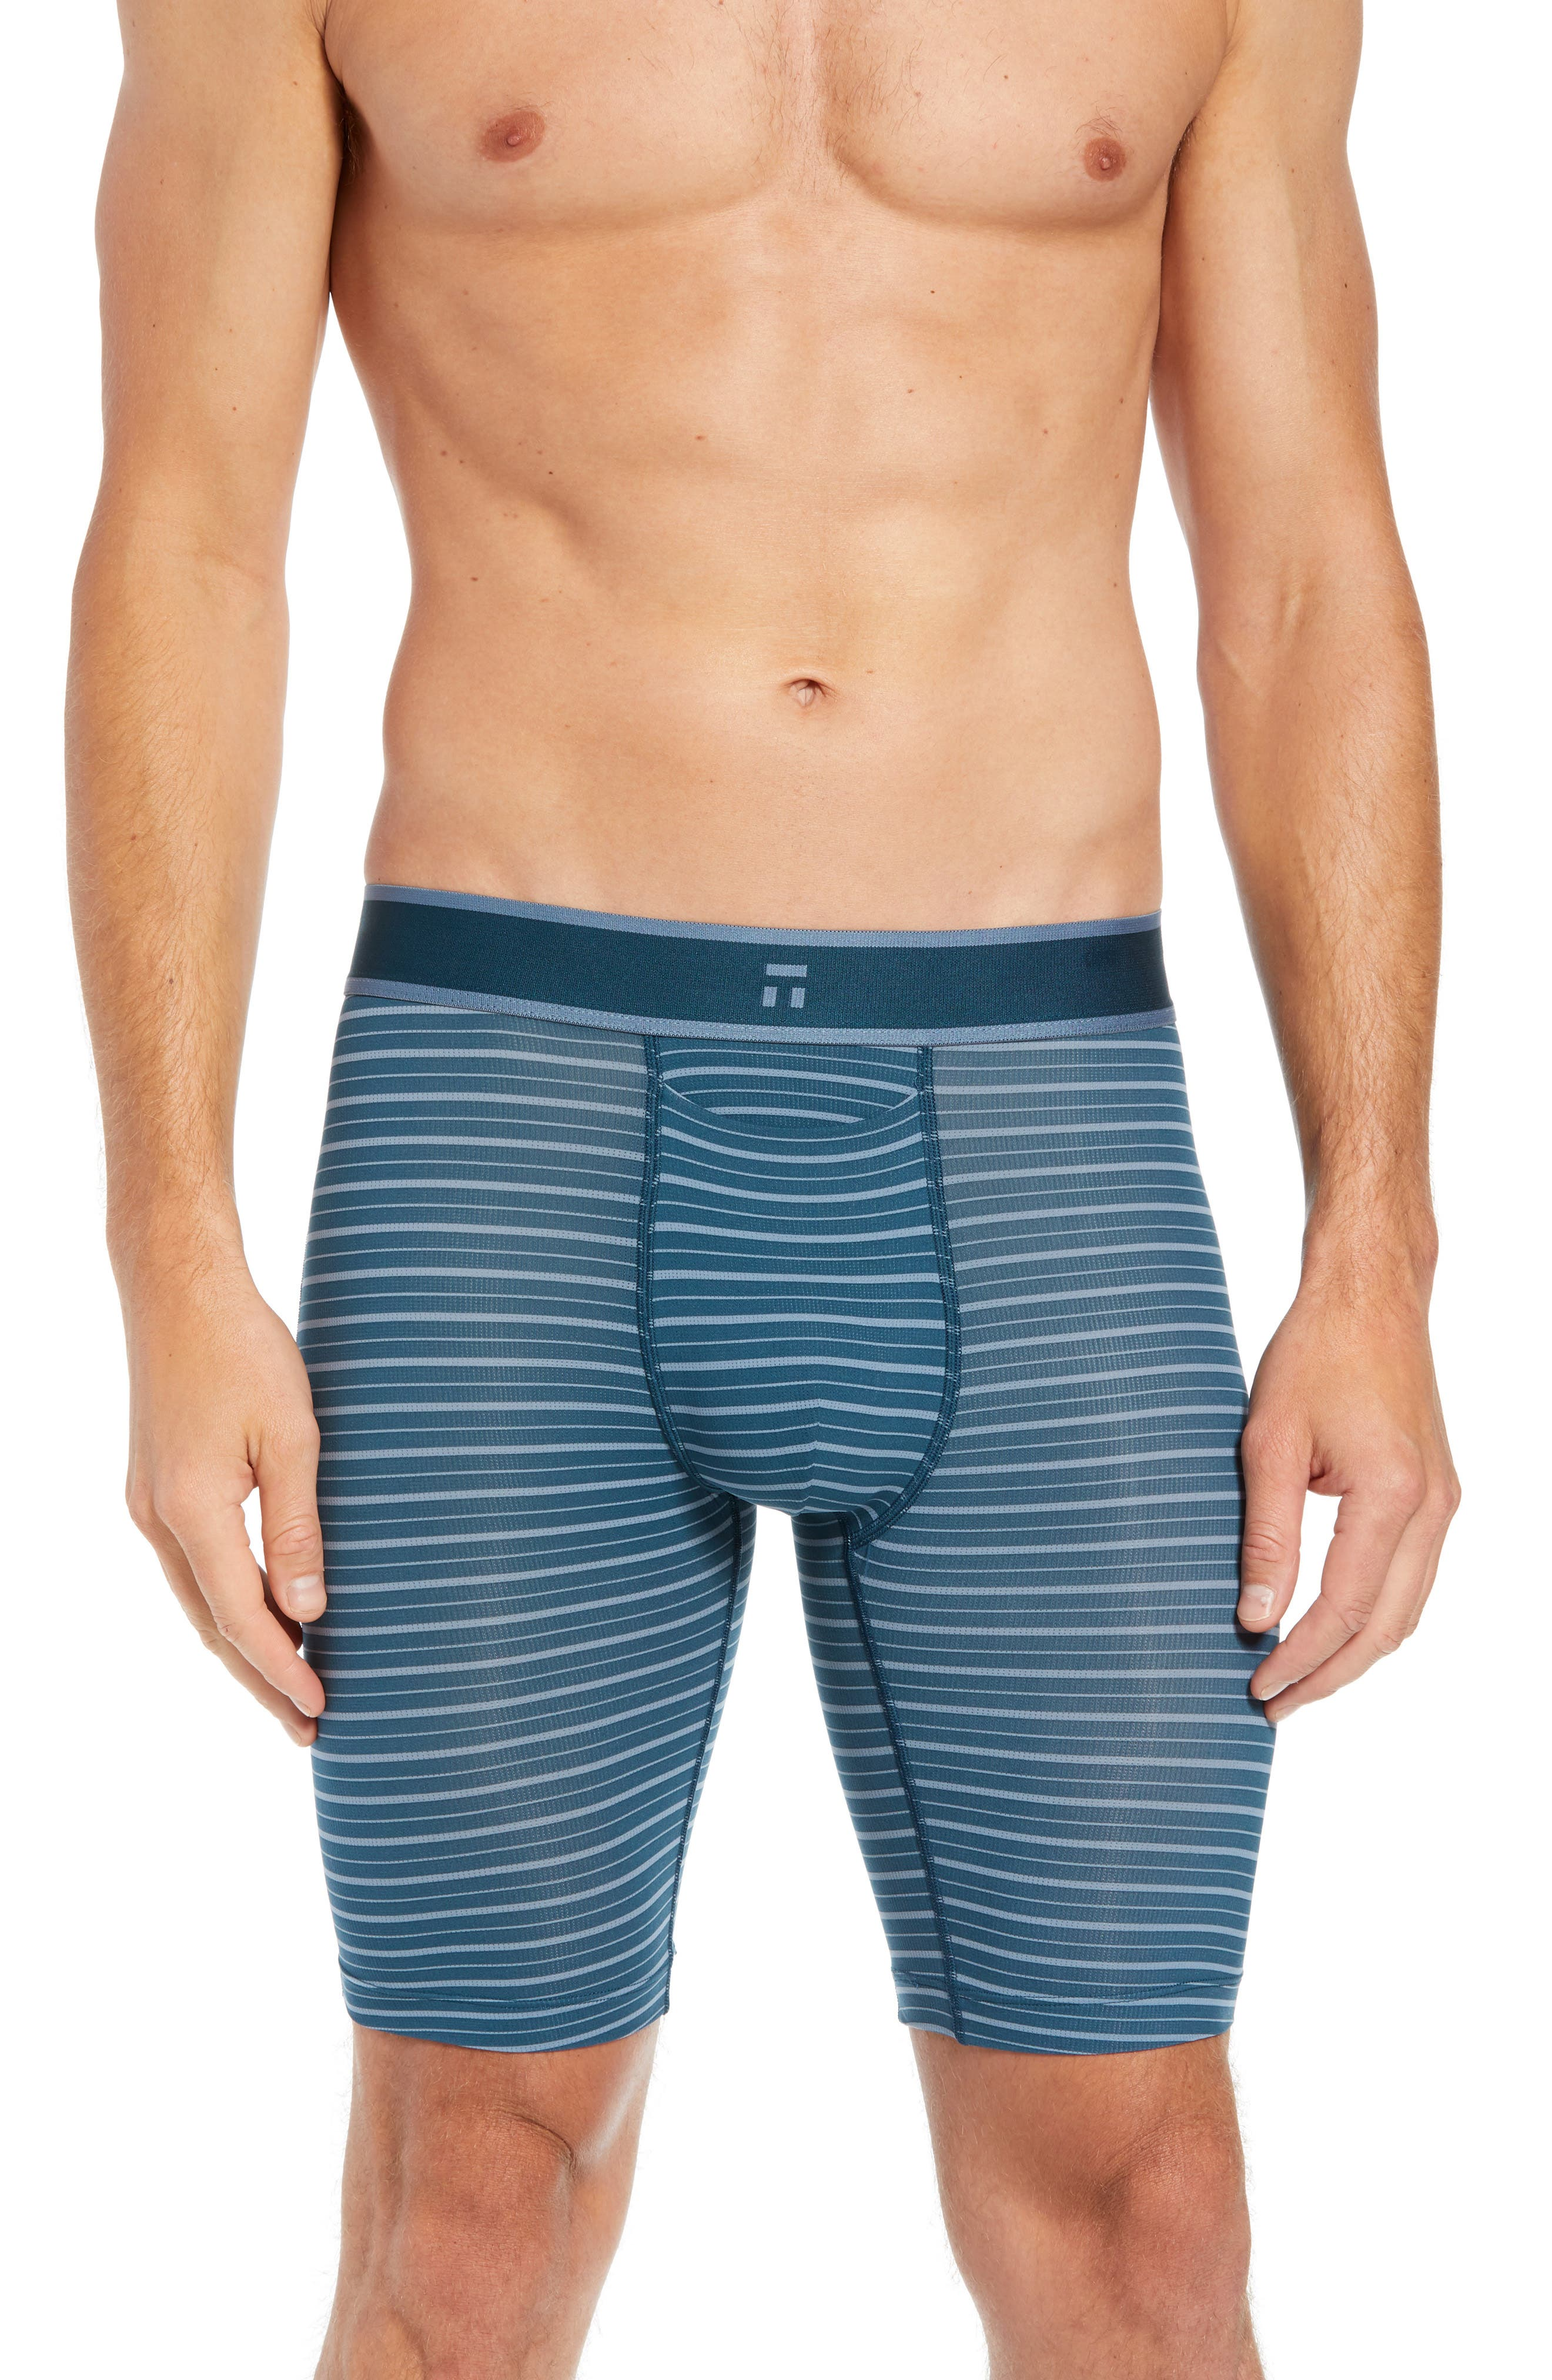 Air Boxer Briefs,                         Main,                         color, REFLECTING POND/ BLUE MIRAGE